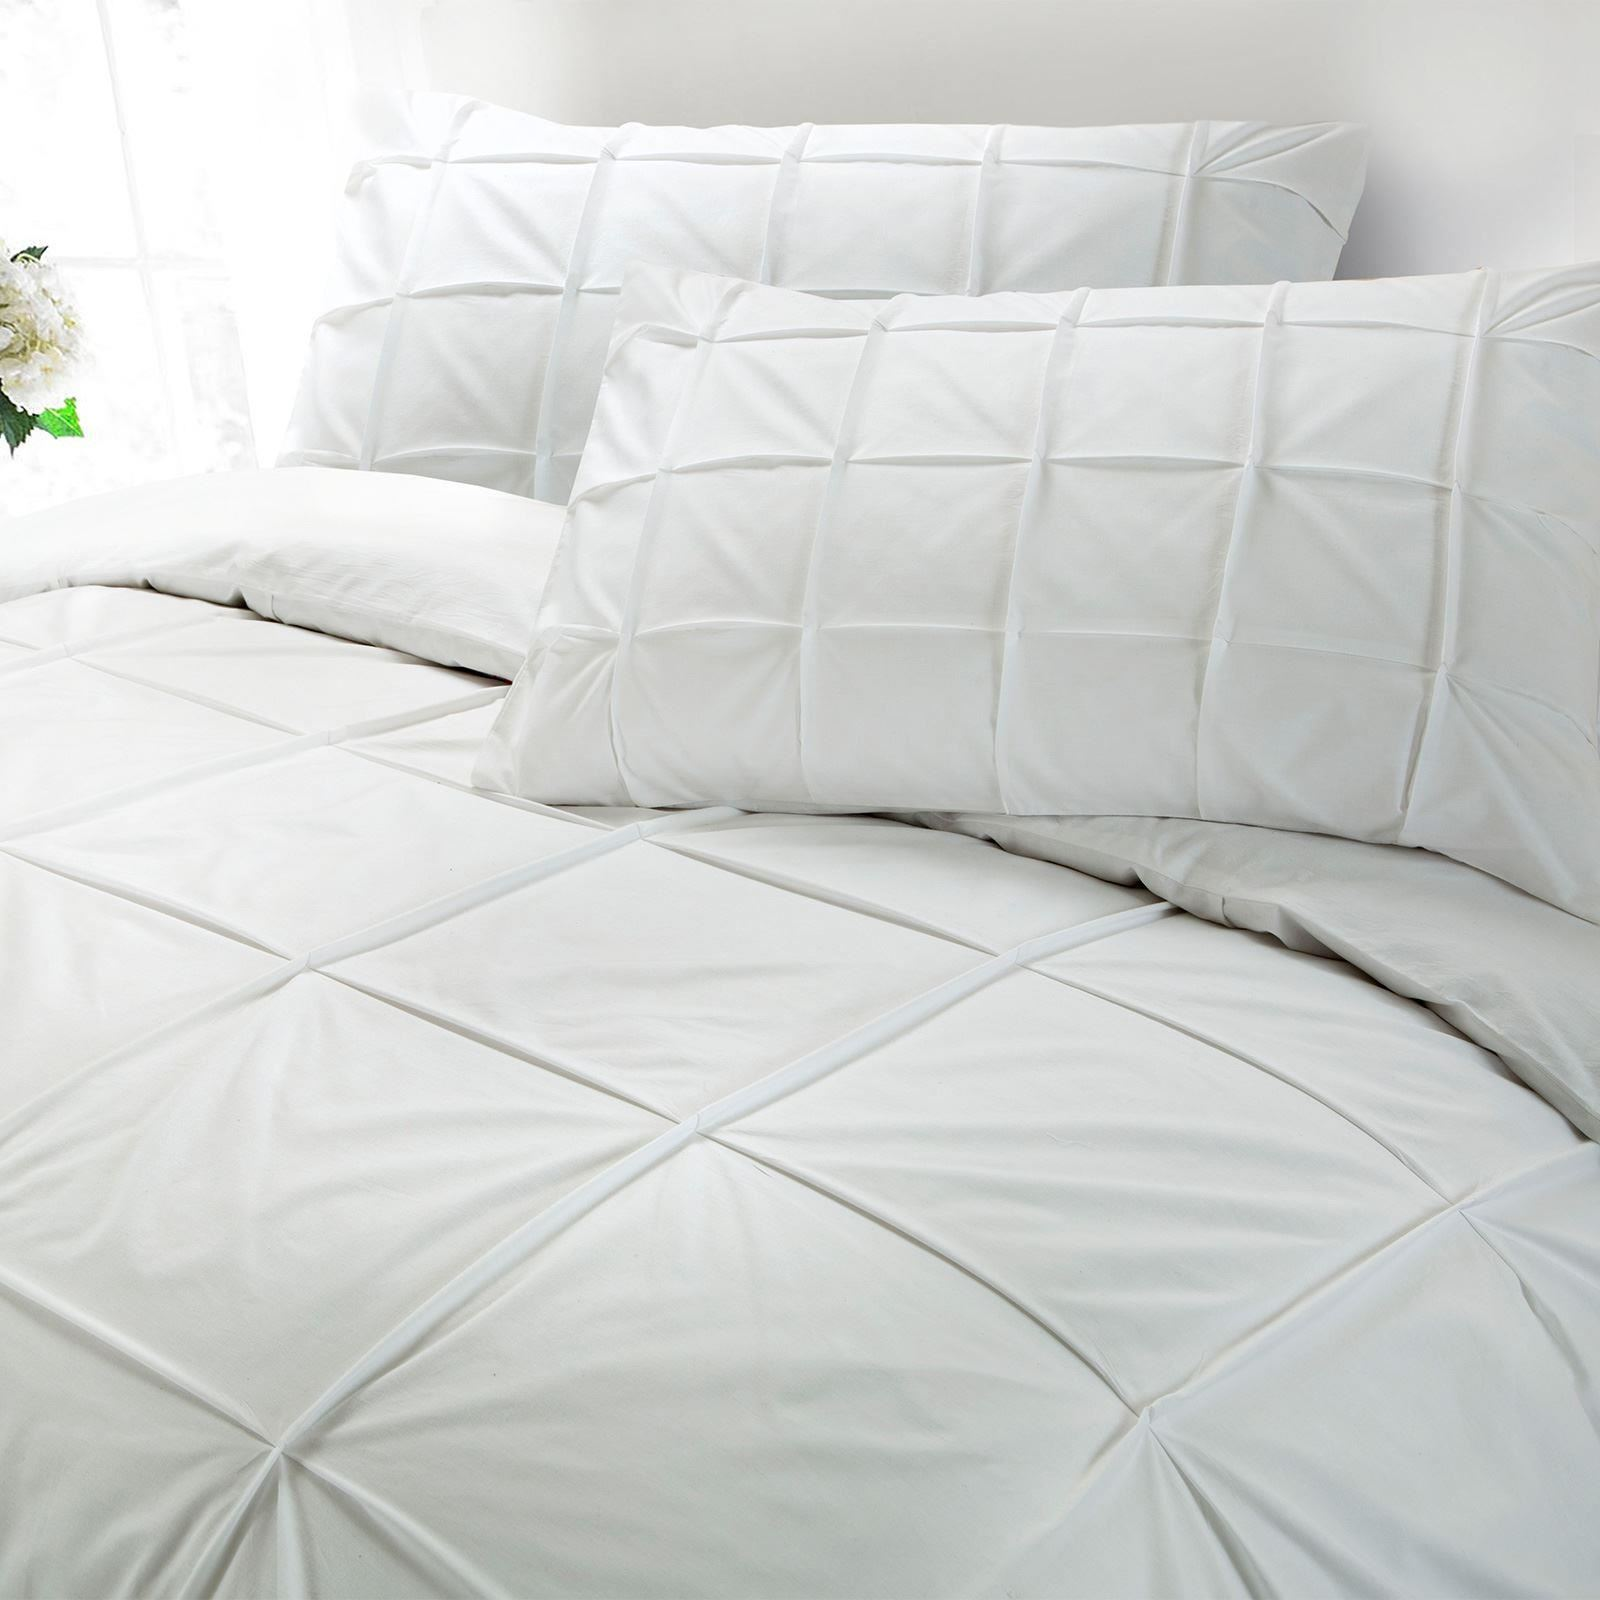 Cartier-100-Egyptian-Cotton-200-Thread-Percale-Pintuck-Duvet-Cover-Bedding-Set thumbnail 11